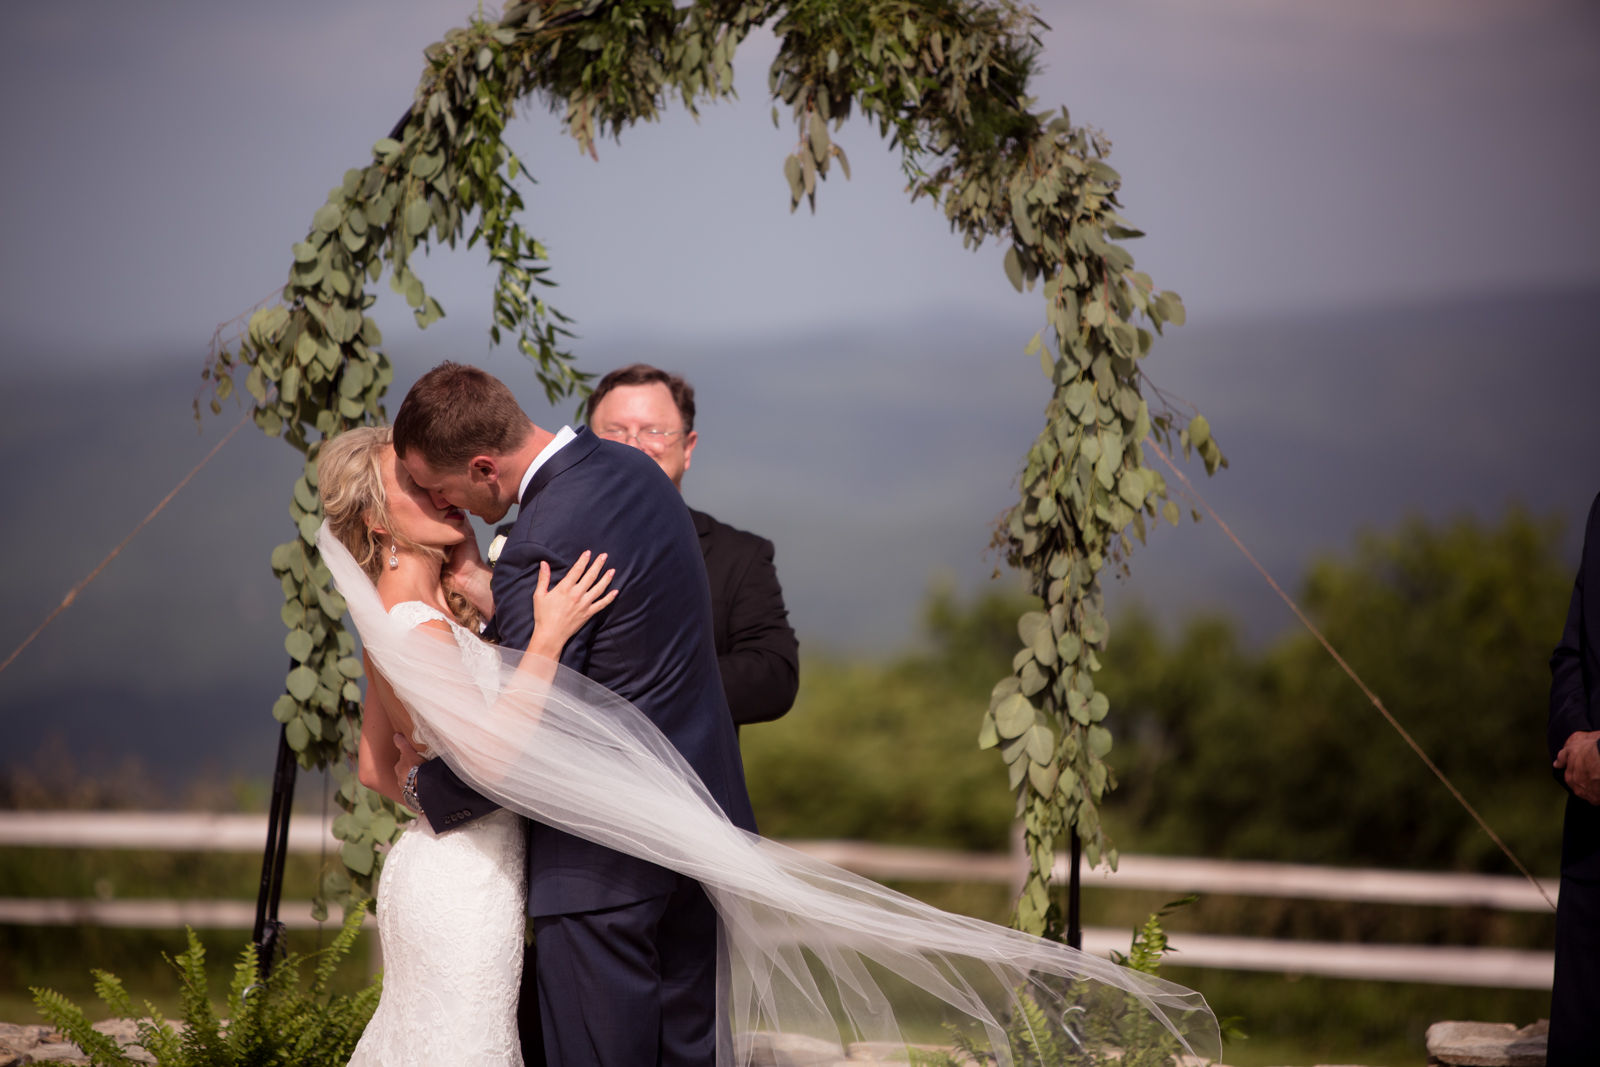 Poetry-&-Motion-High-Country-Wedding-Photography-Overlook-Barn (19 of 35).jpg